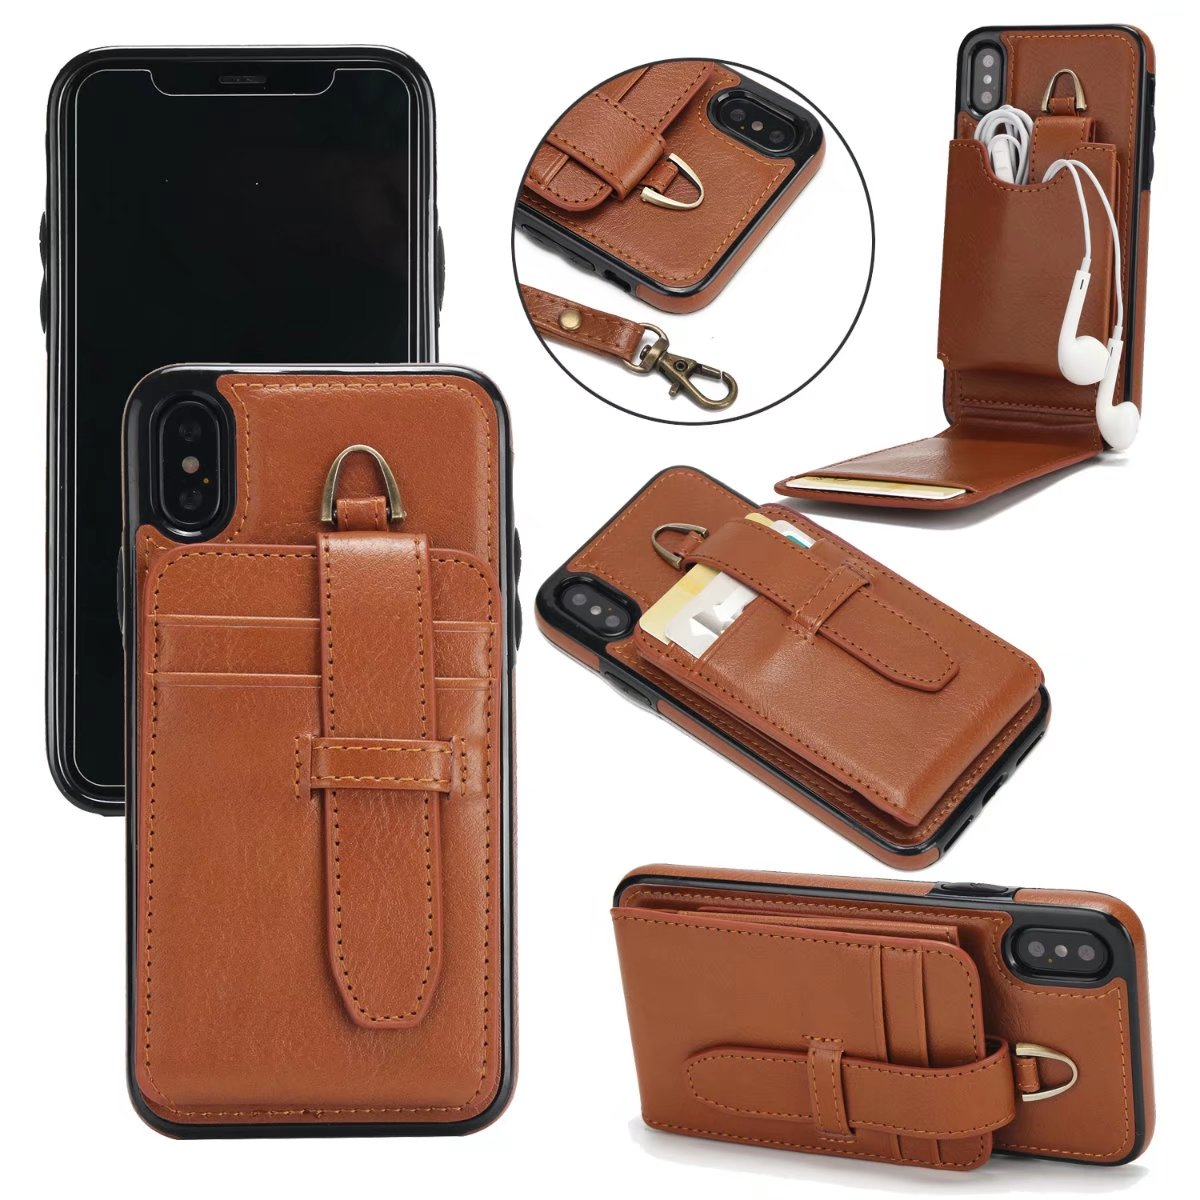 Luxury Leather Flip Case for iPhone X Wallet Book Cover 2-in-1 Vertical Flip for iPhone X Case iPhoneX 2017 Phone Case Holder